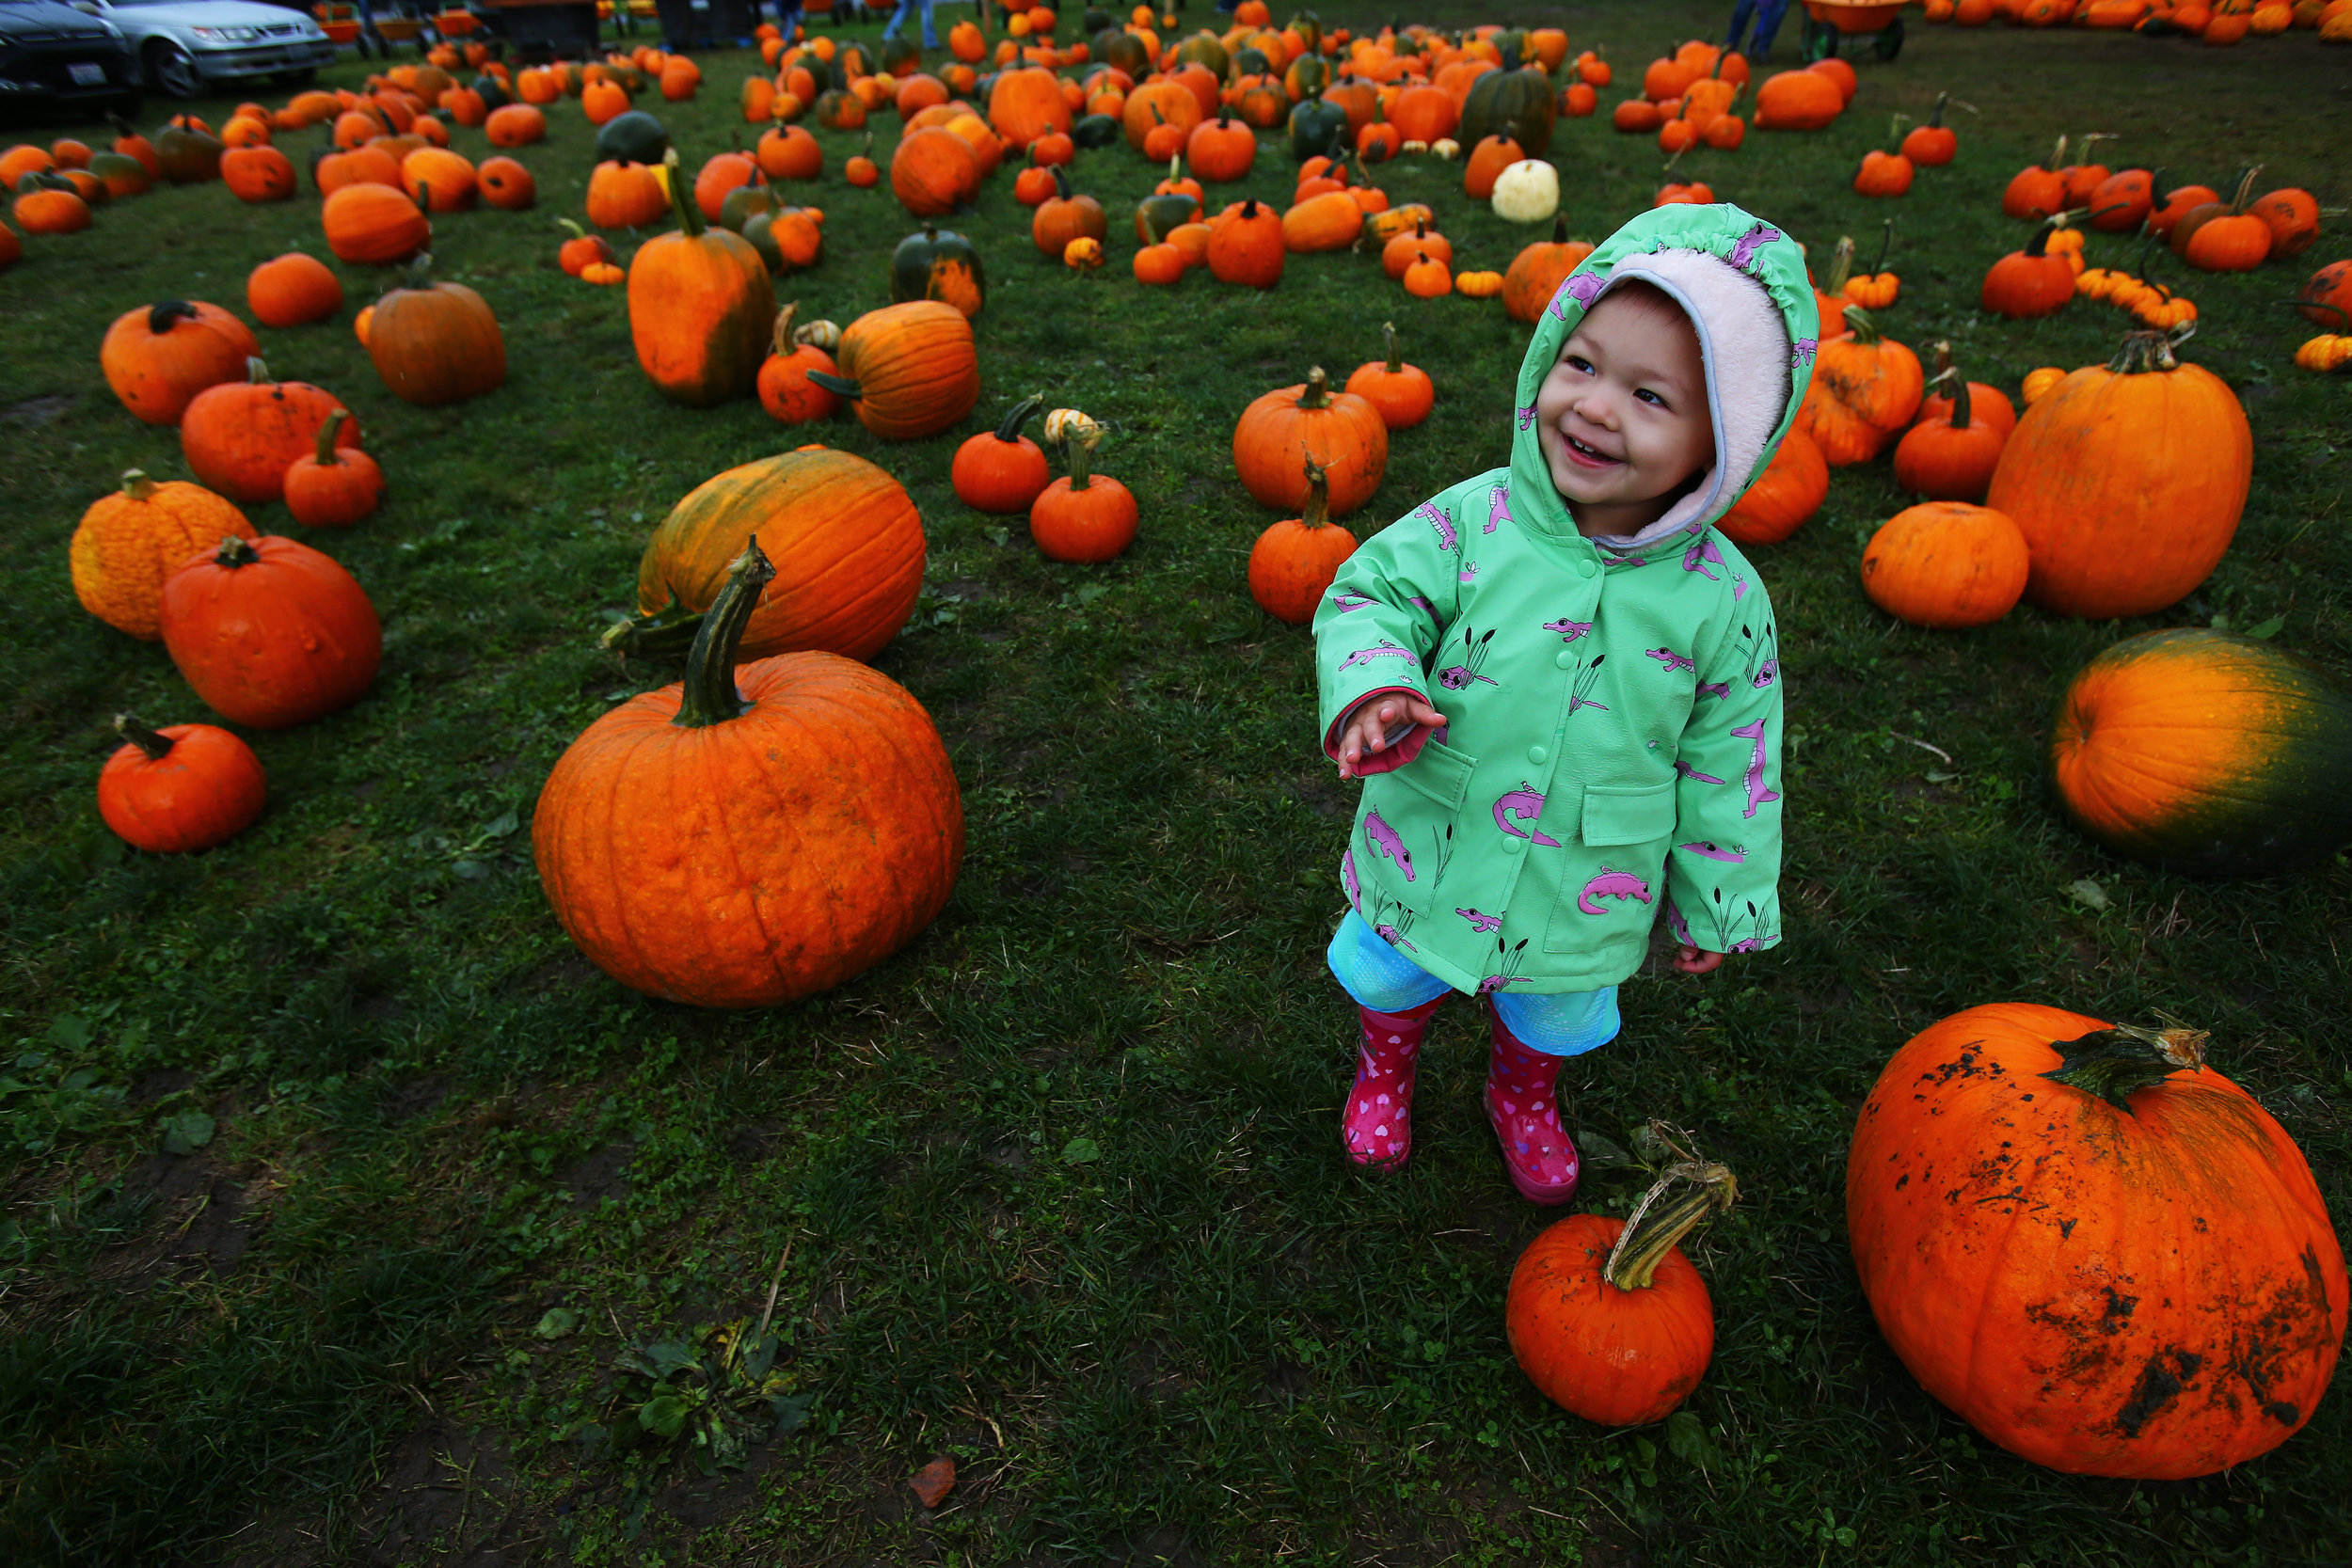 One-year-old Leena Morzden, daughter of Kristin and Roger Morzden, looks for the perfect pumpkin while at Bob's Corn & Pumpkin Farm in Snohomish on Sunday, October 16, 2016.